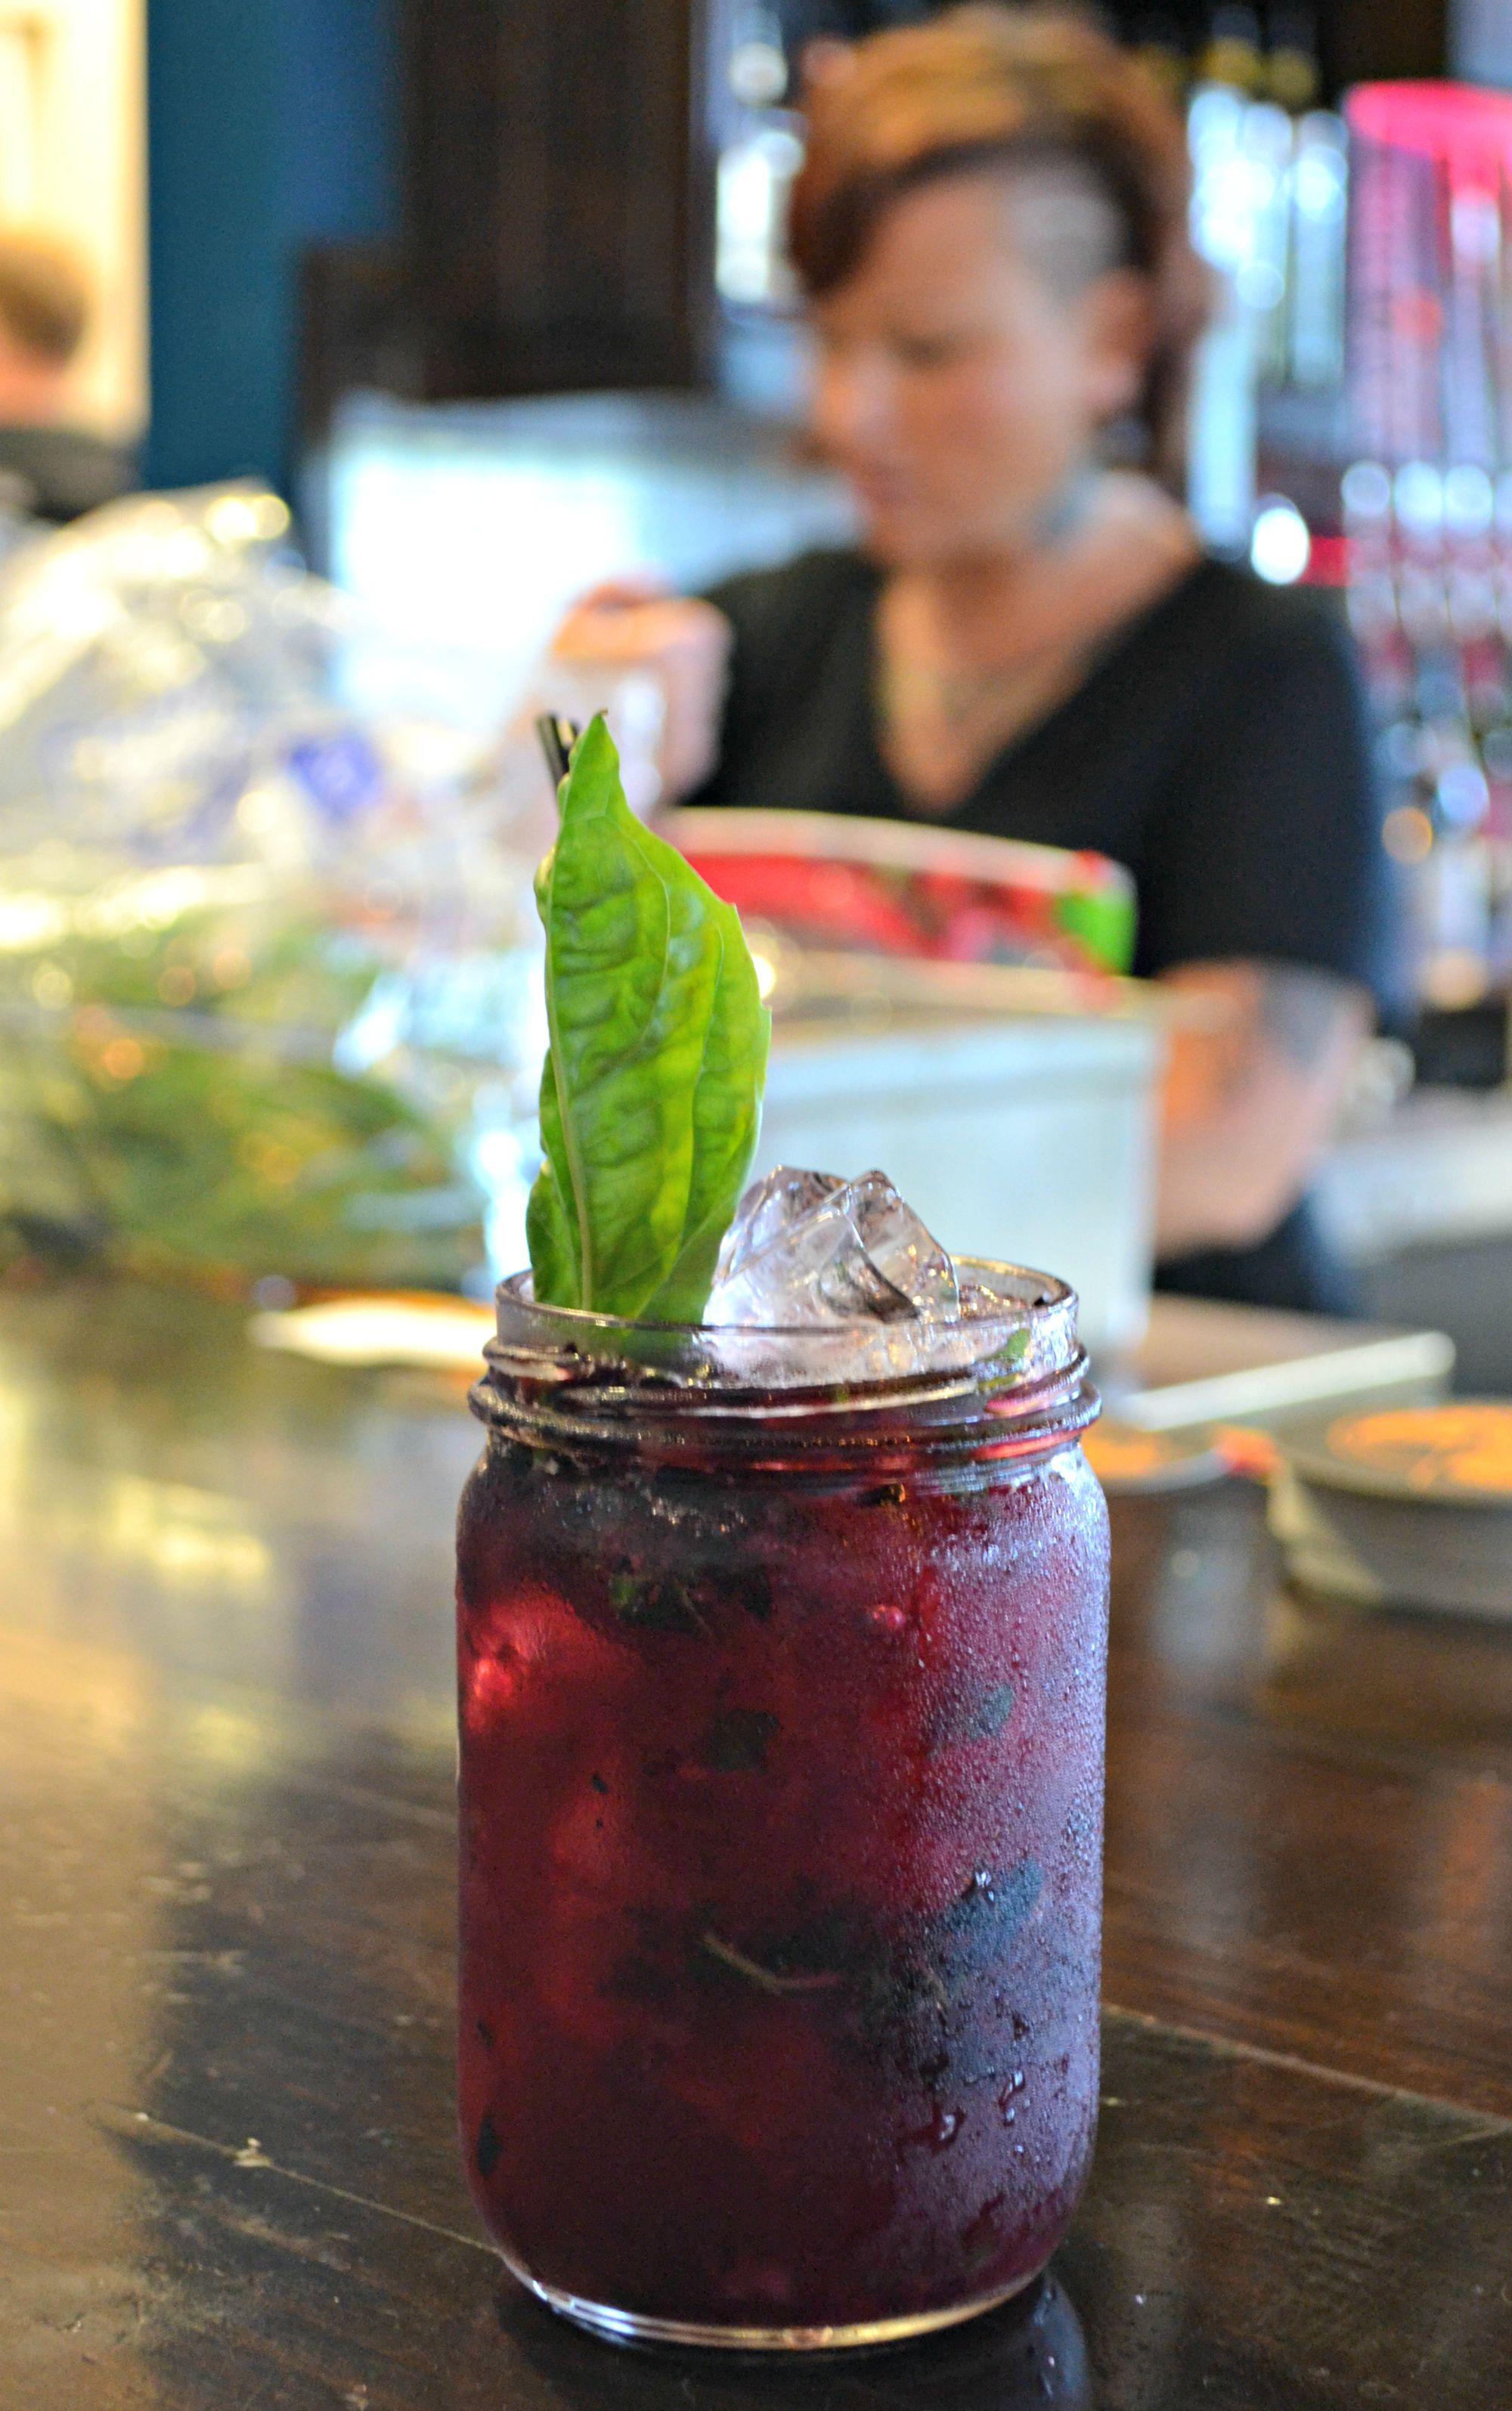 blueberry basilito jar jennifer